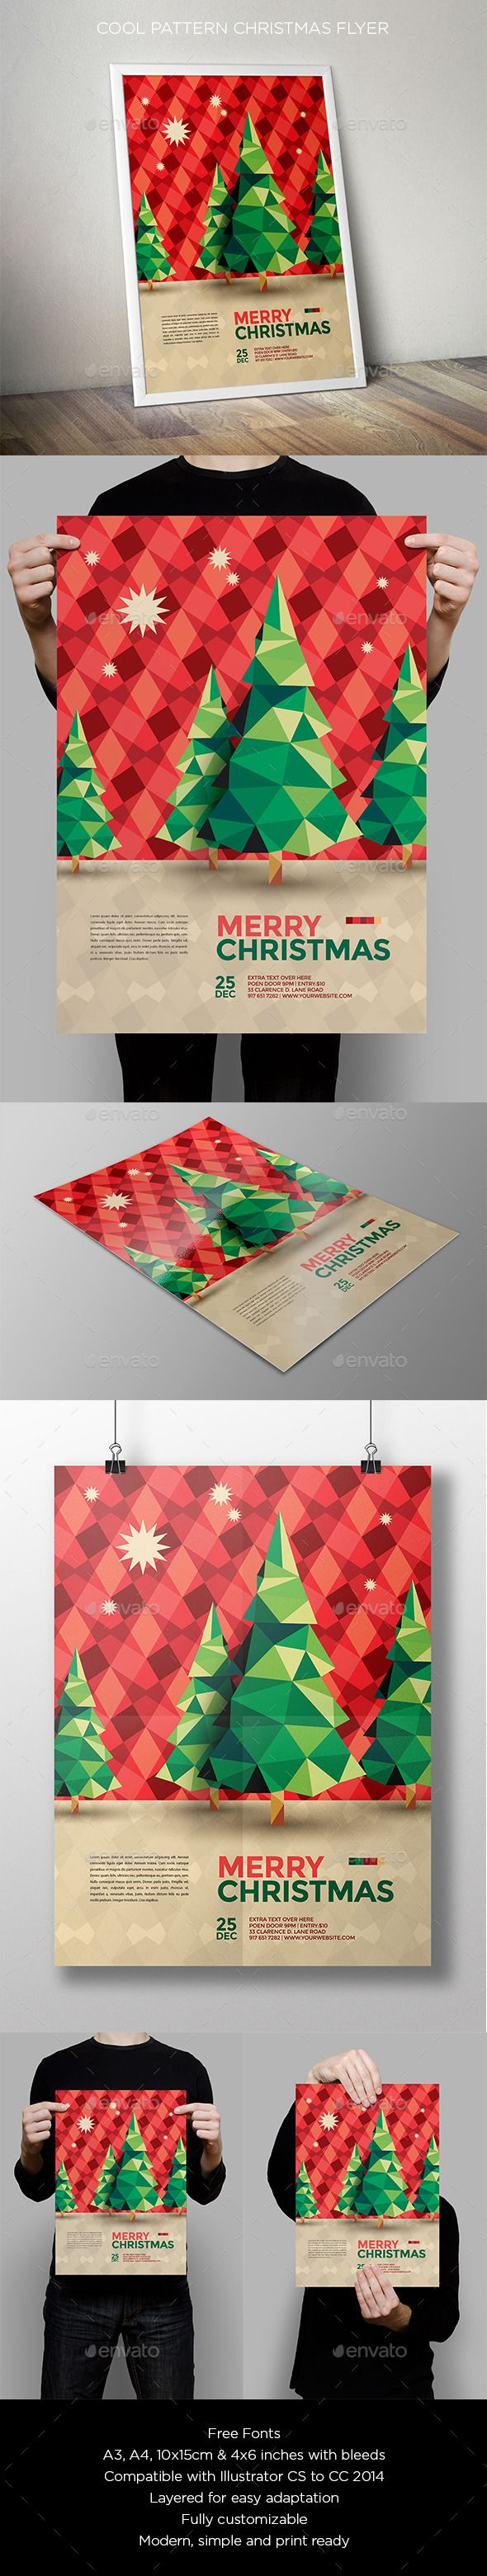 Poster design free download - Cool Pattern Christmas Flyer